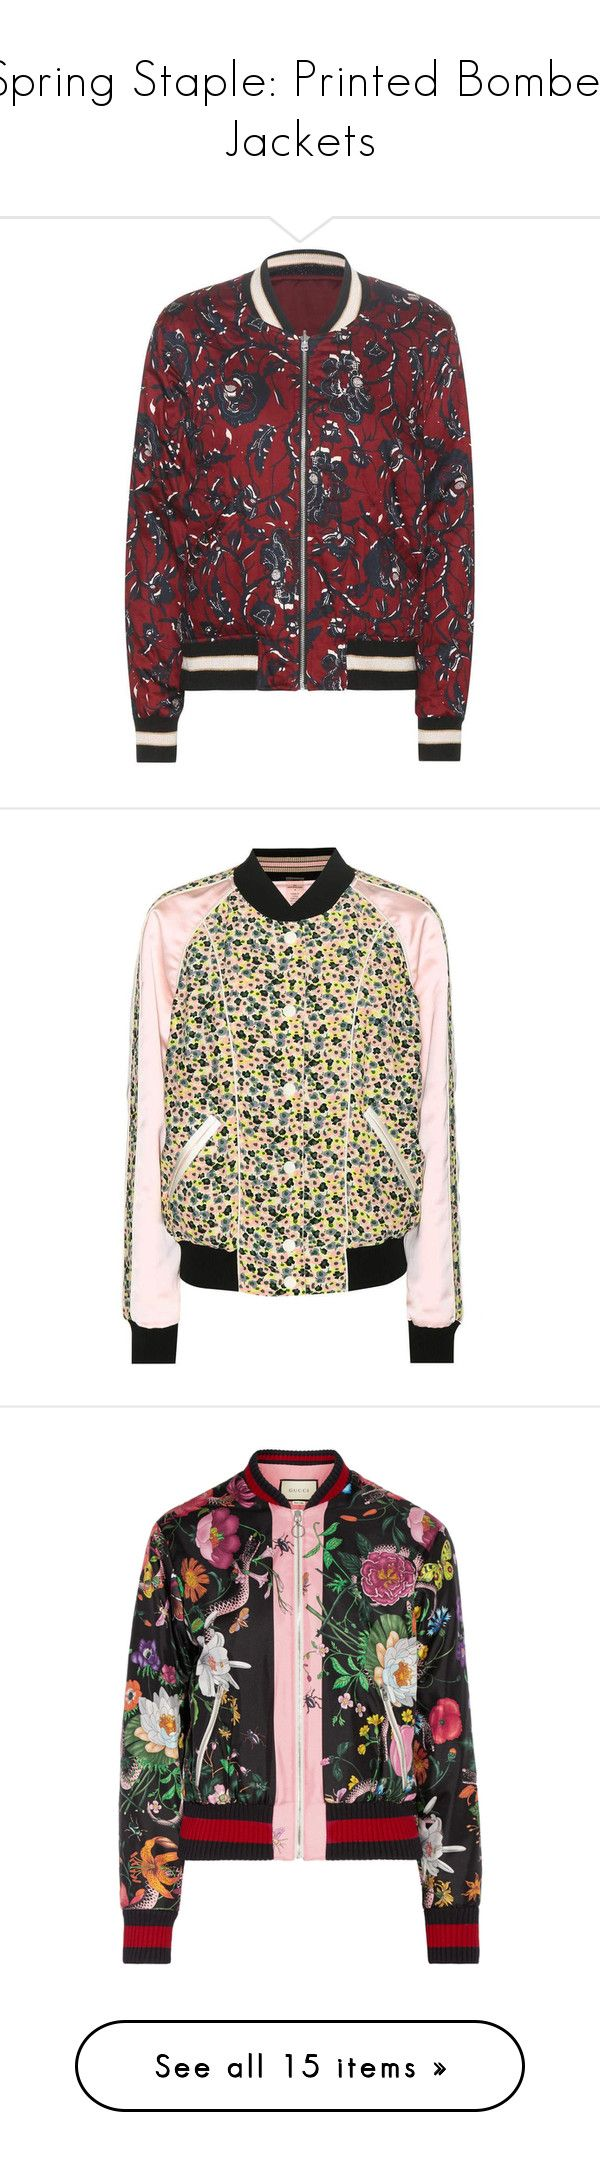 """Spring Staple: Printed Bomber Jackets"" by polyvore-editorial ❤ liked on Polyvore featuring printedbomberjackets, outerwear, jackets, red, red jacket, etoile--isabel marant jacket, bomber style jacket, red cotton jacket, blouson jacket and multicoloured"